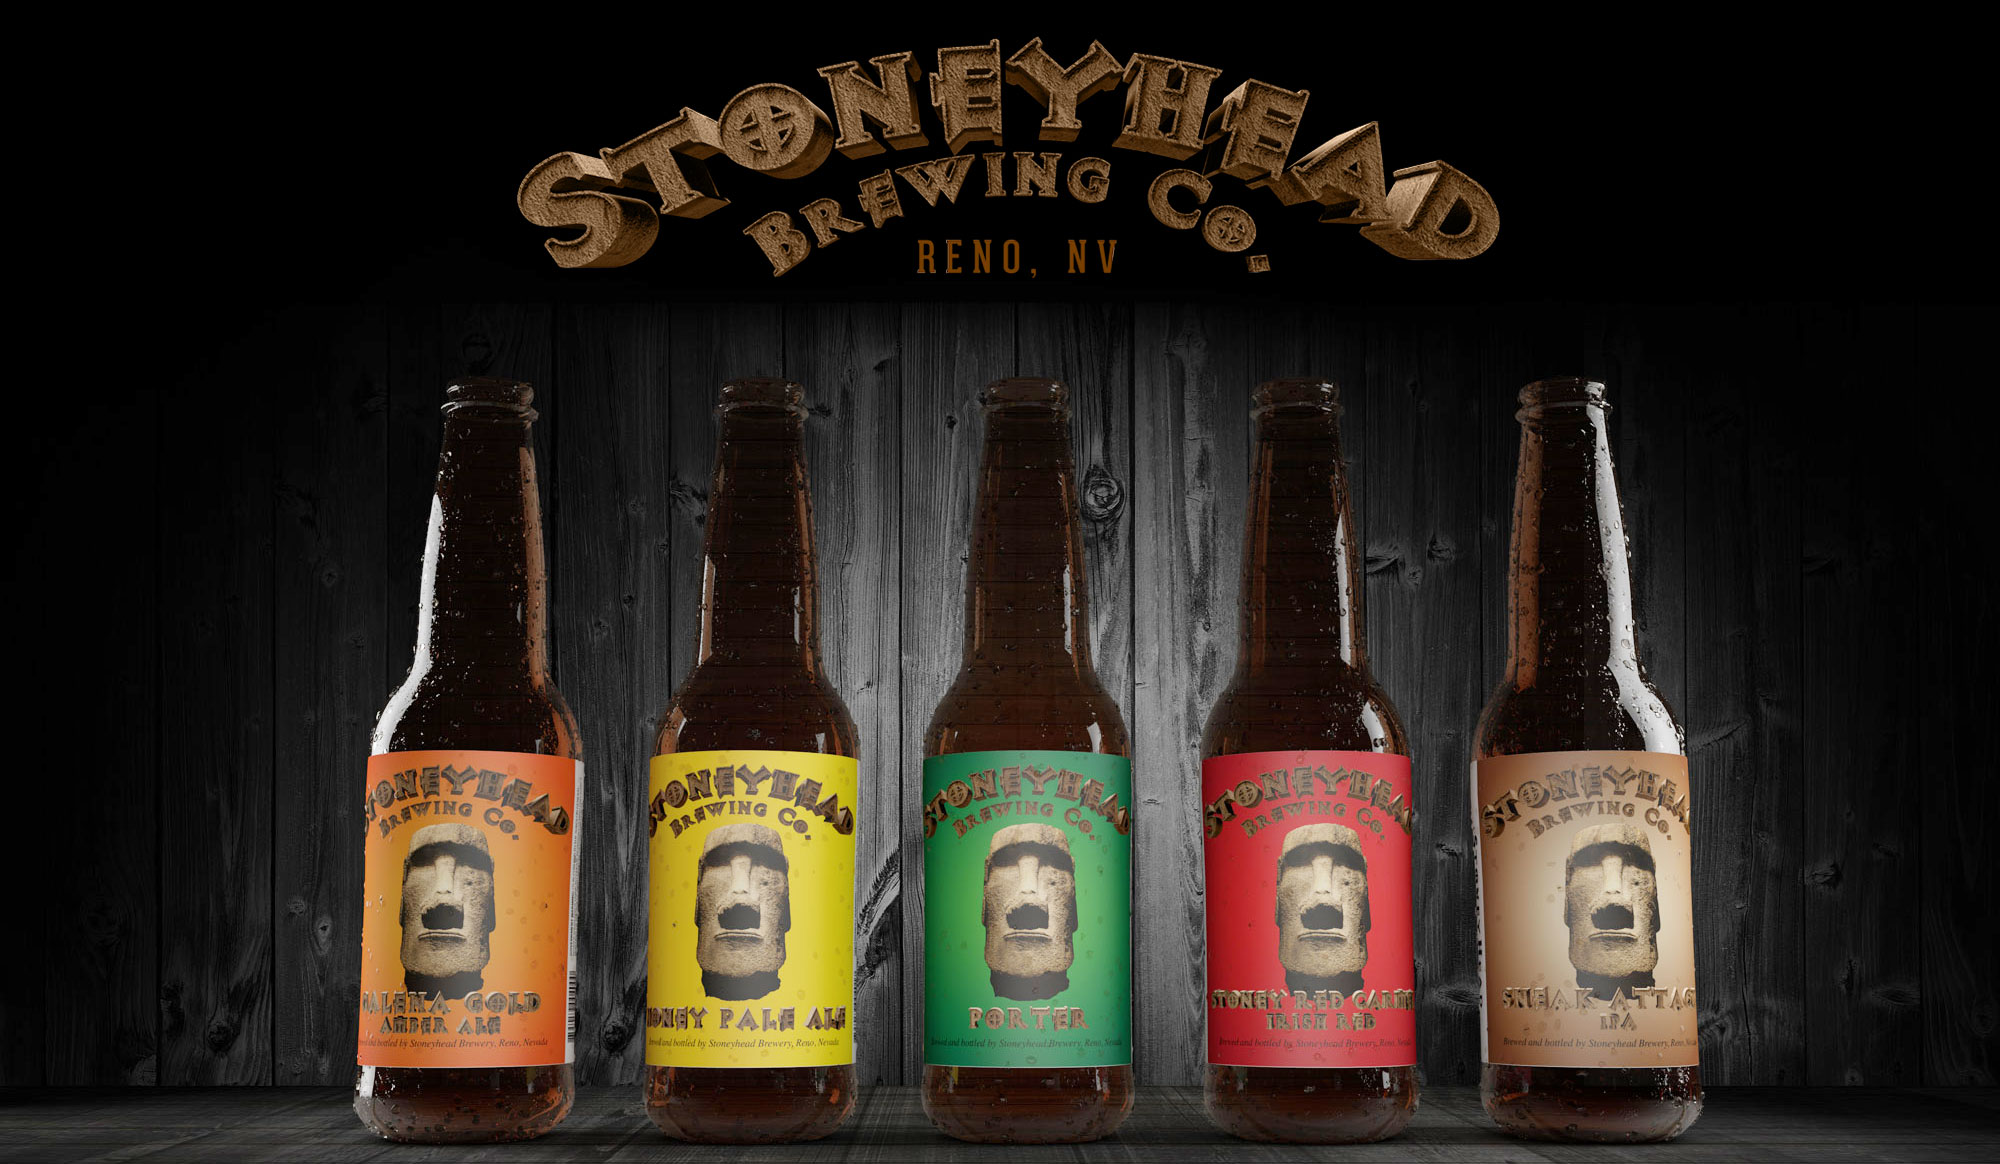 Stoneyhead Beer label designs